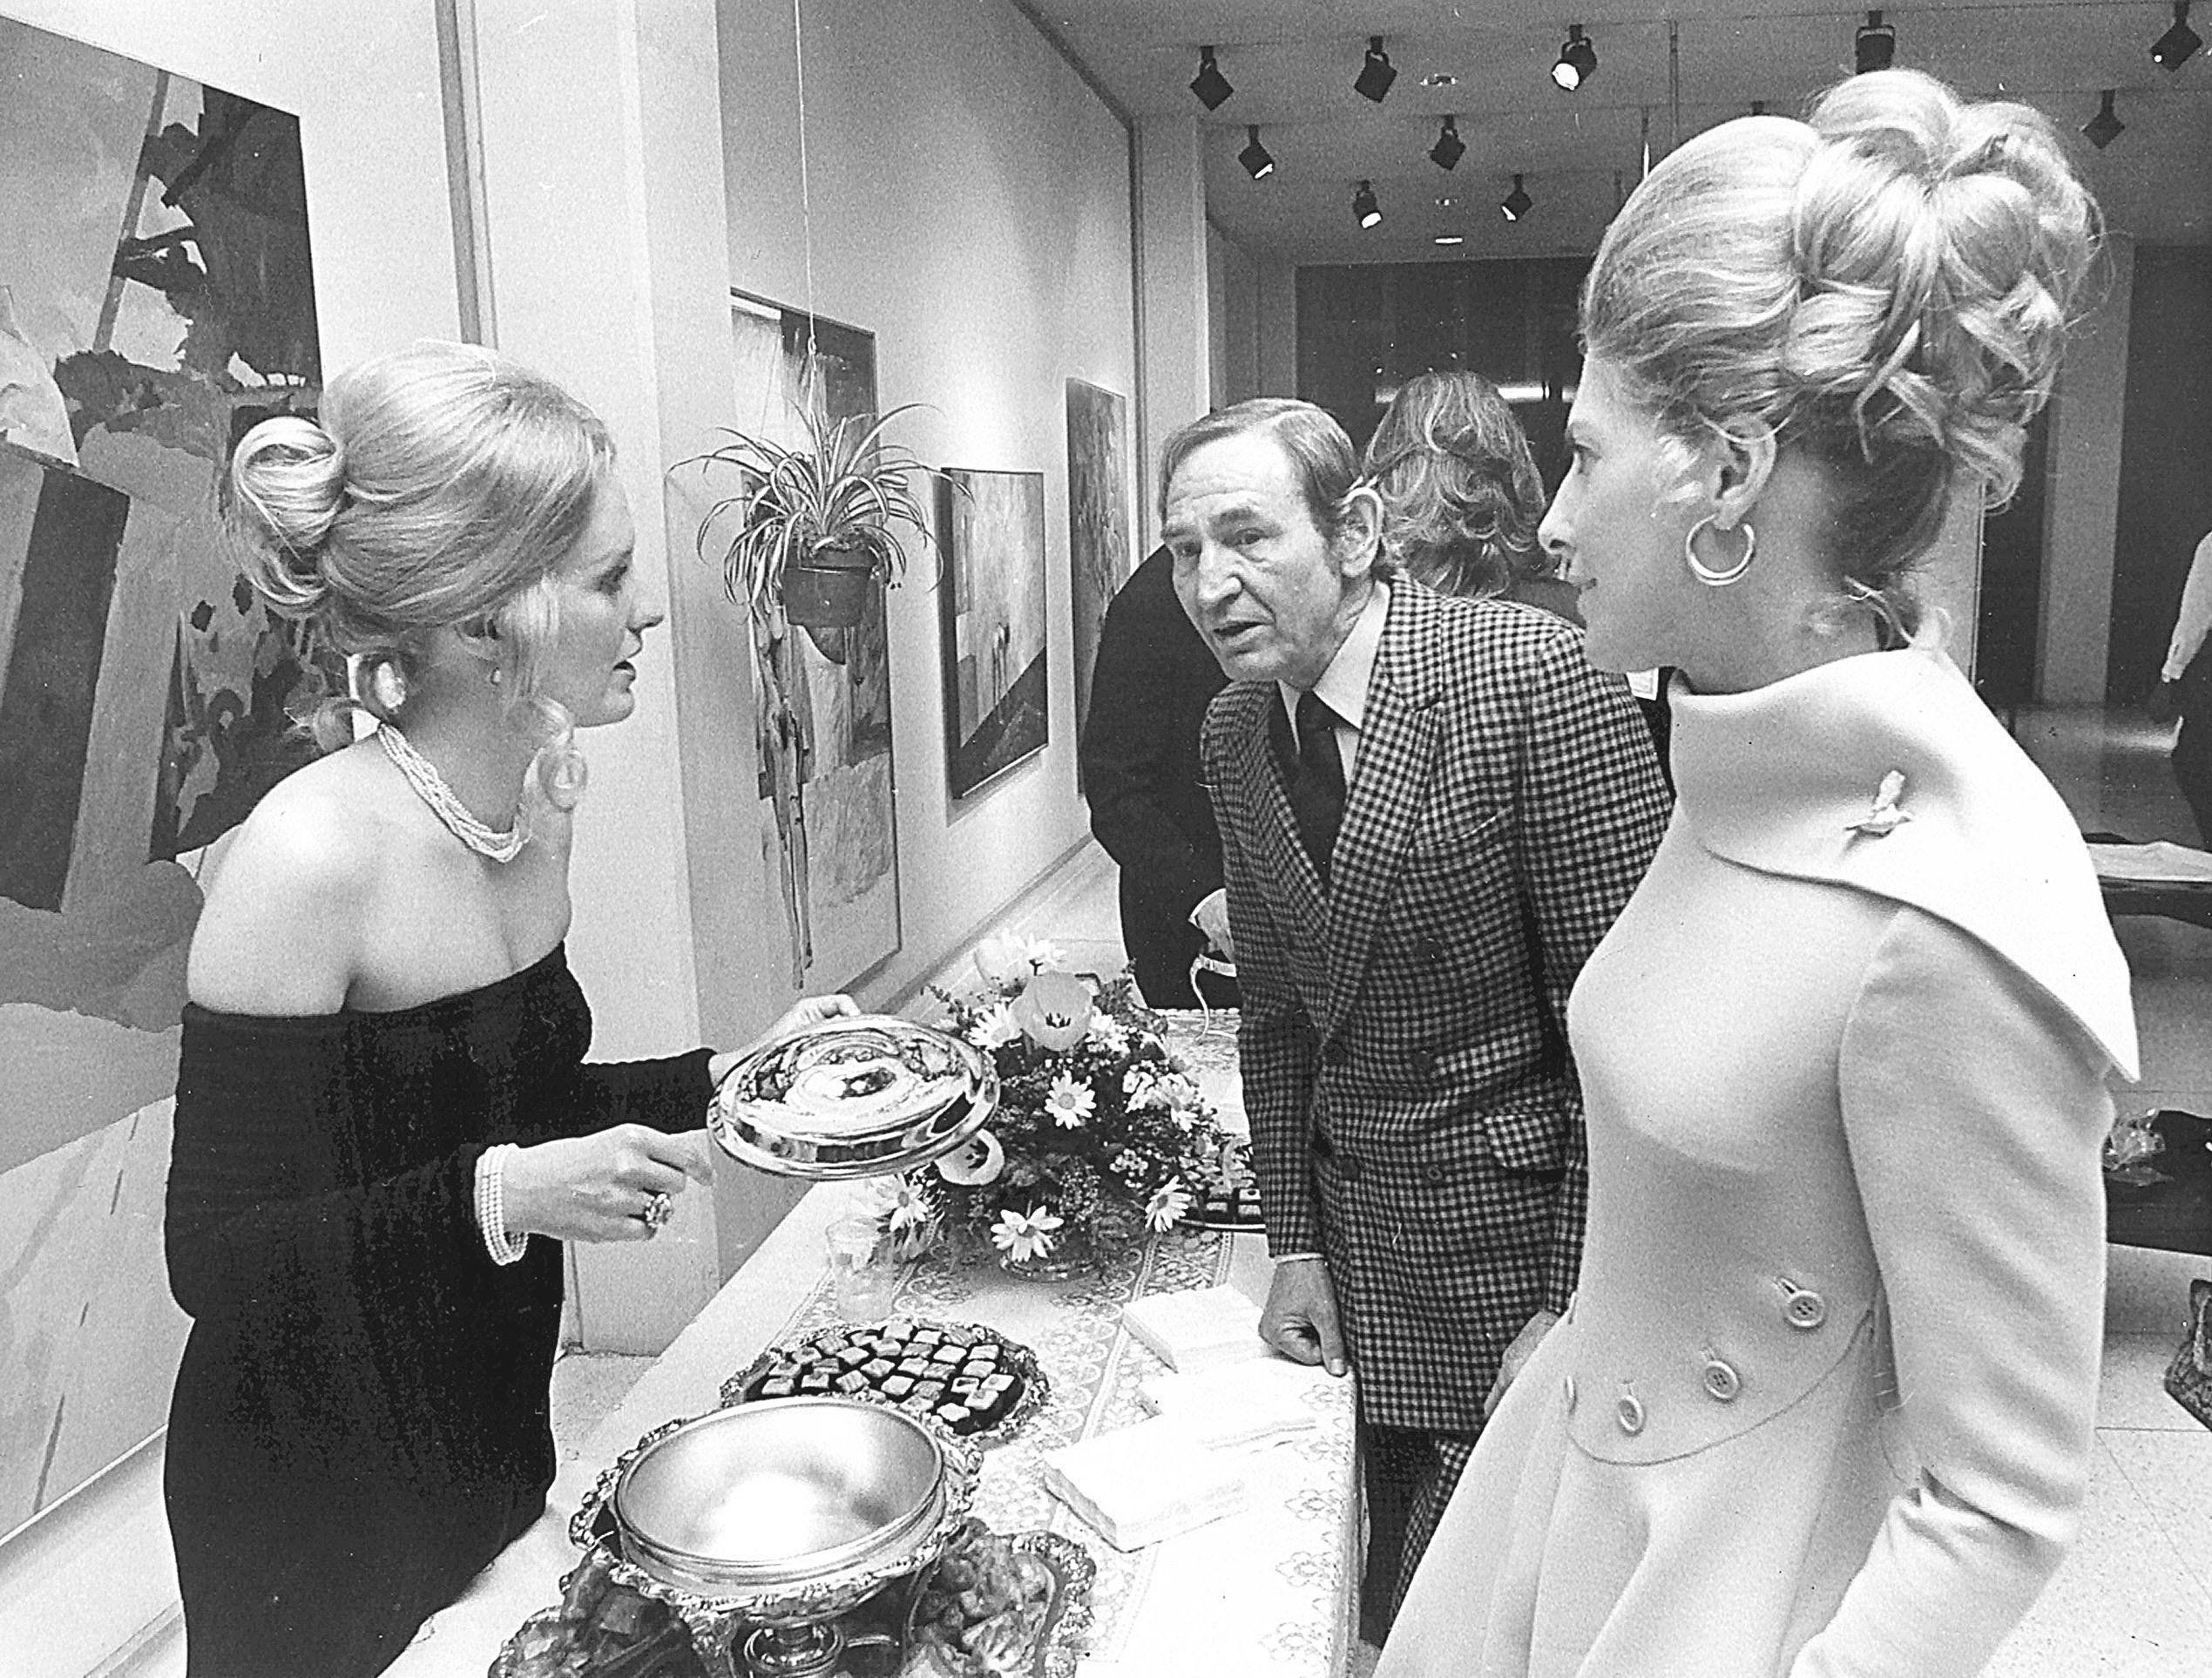 Rhea Looney (Left) plays hostess to noted artist Carroll Cloar and Mrs. Allison Kimball on 24 Mar 1972 at a slide showing of the artist's work at Memphis Academy of Arts. Cloar was commentator for the showing to benefit the Memphis Ballet Company.